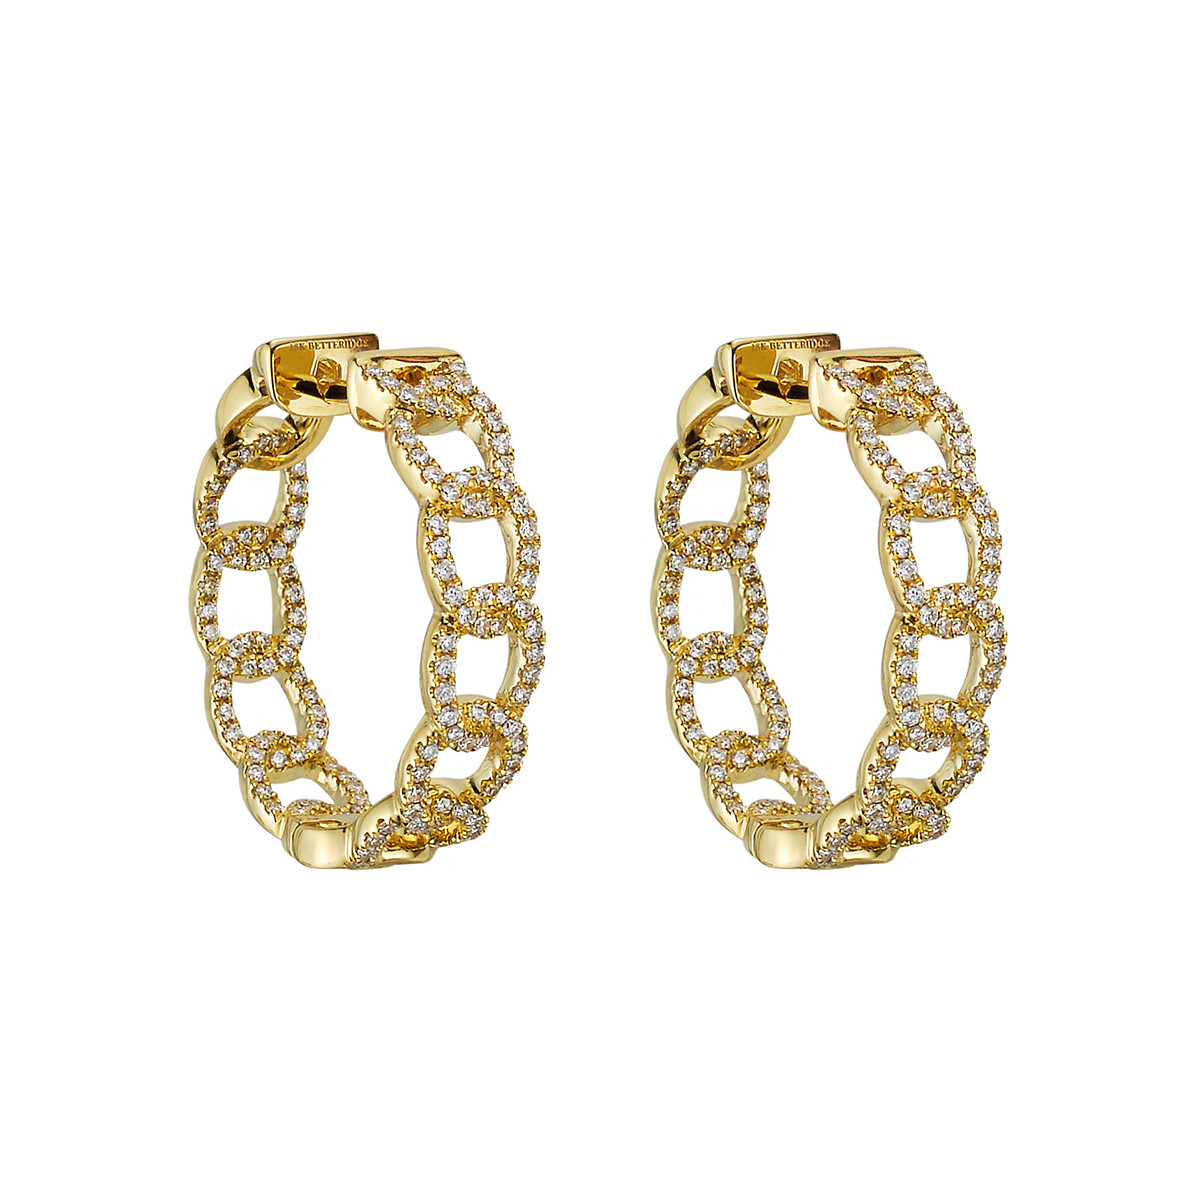 Small 18k Yellow Gold & Diamond Curb Link Hoop Earrings